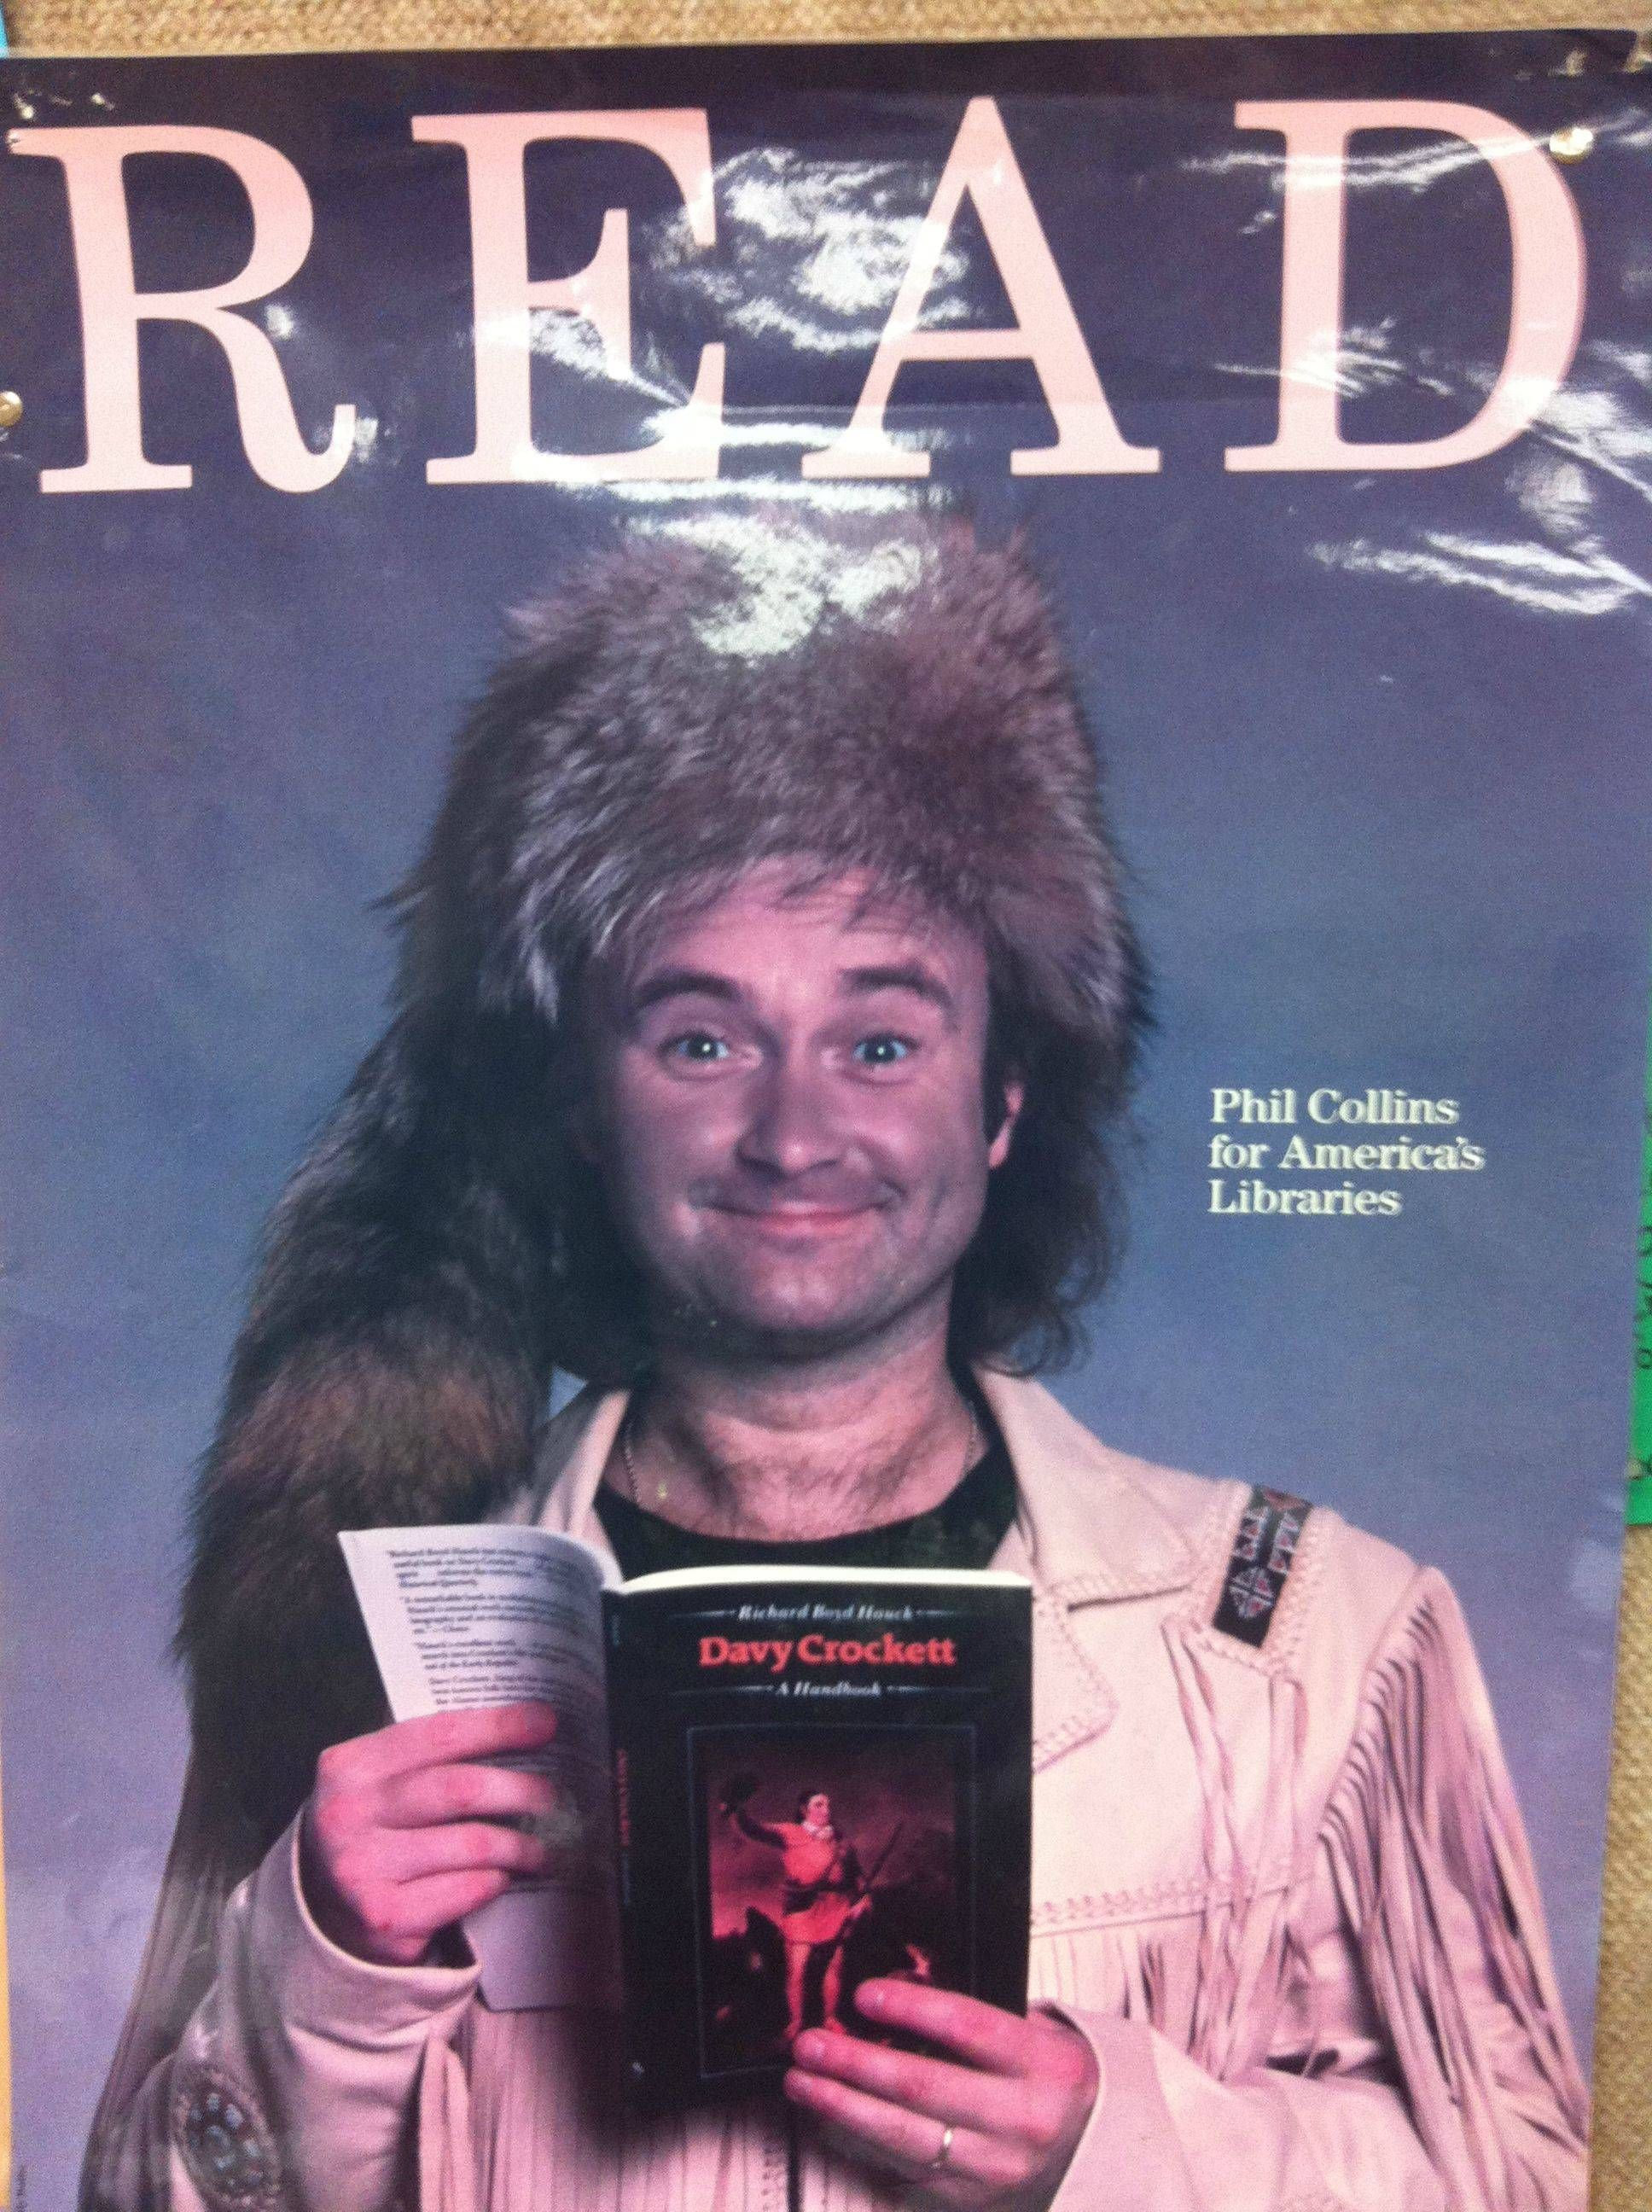 ALA READ poster featuring Phil Collins